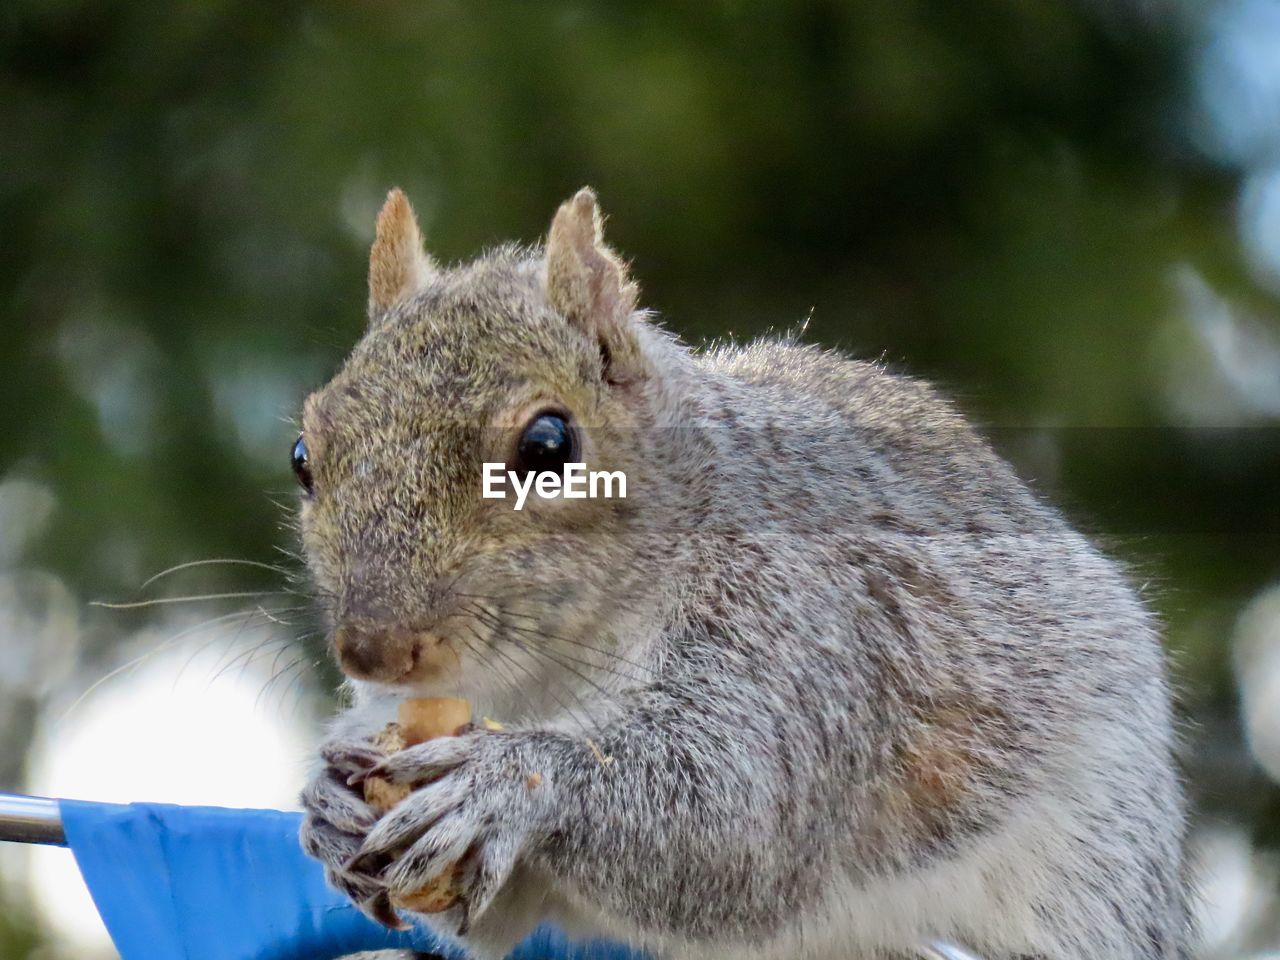 animal themes, animal, one animal, mammal, animal wildlife, rodent, close-up, focus on foreground, vertebrate, animals in the wild, no people, squirrel, day, eating, whisker, nature, food, food and drink, outdoors, domestic, animal eye